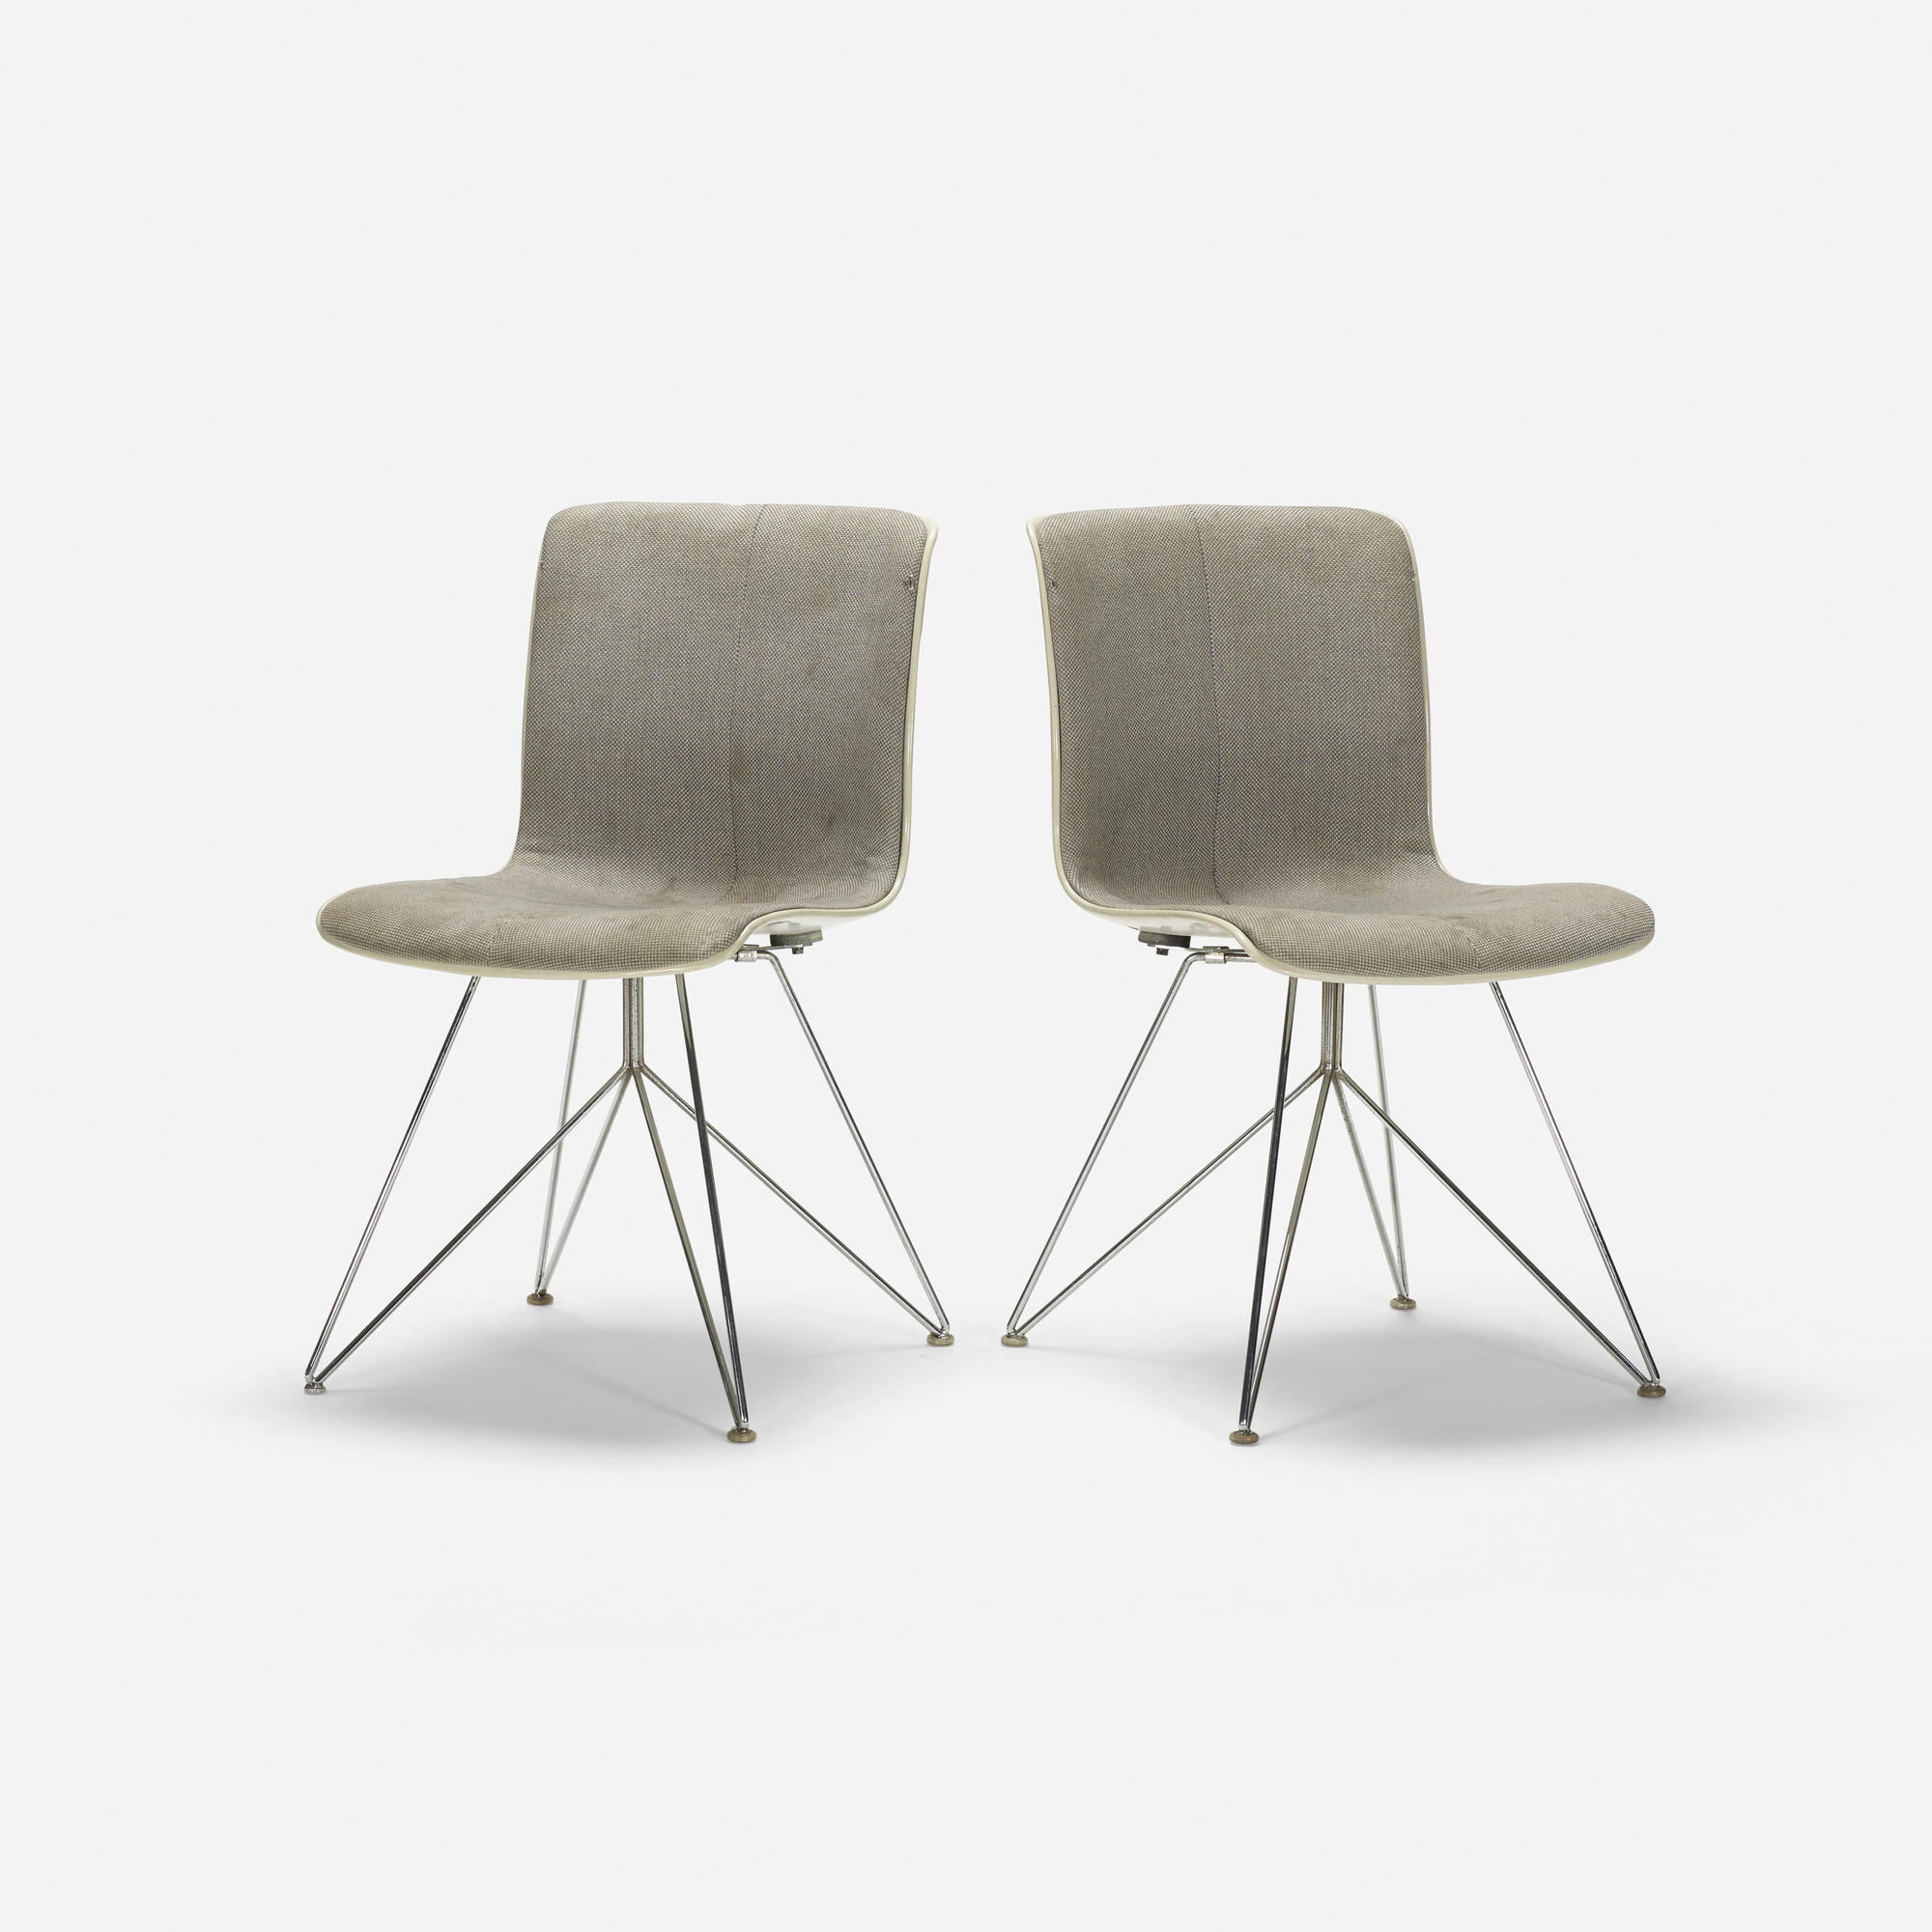 810: Sori Yanagi / chairs, pair (1 of 3)